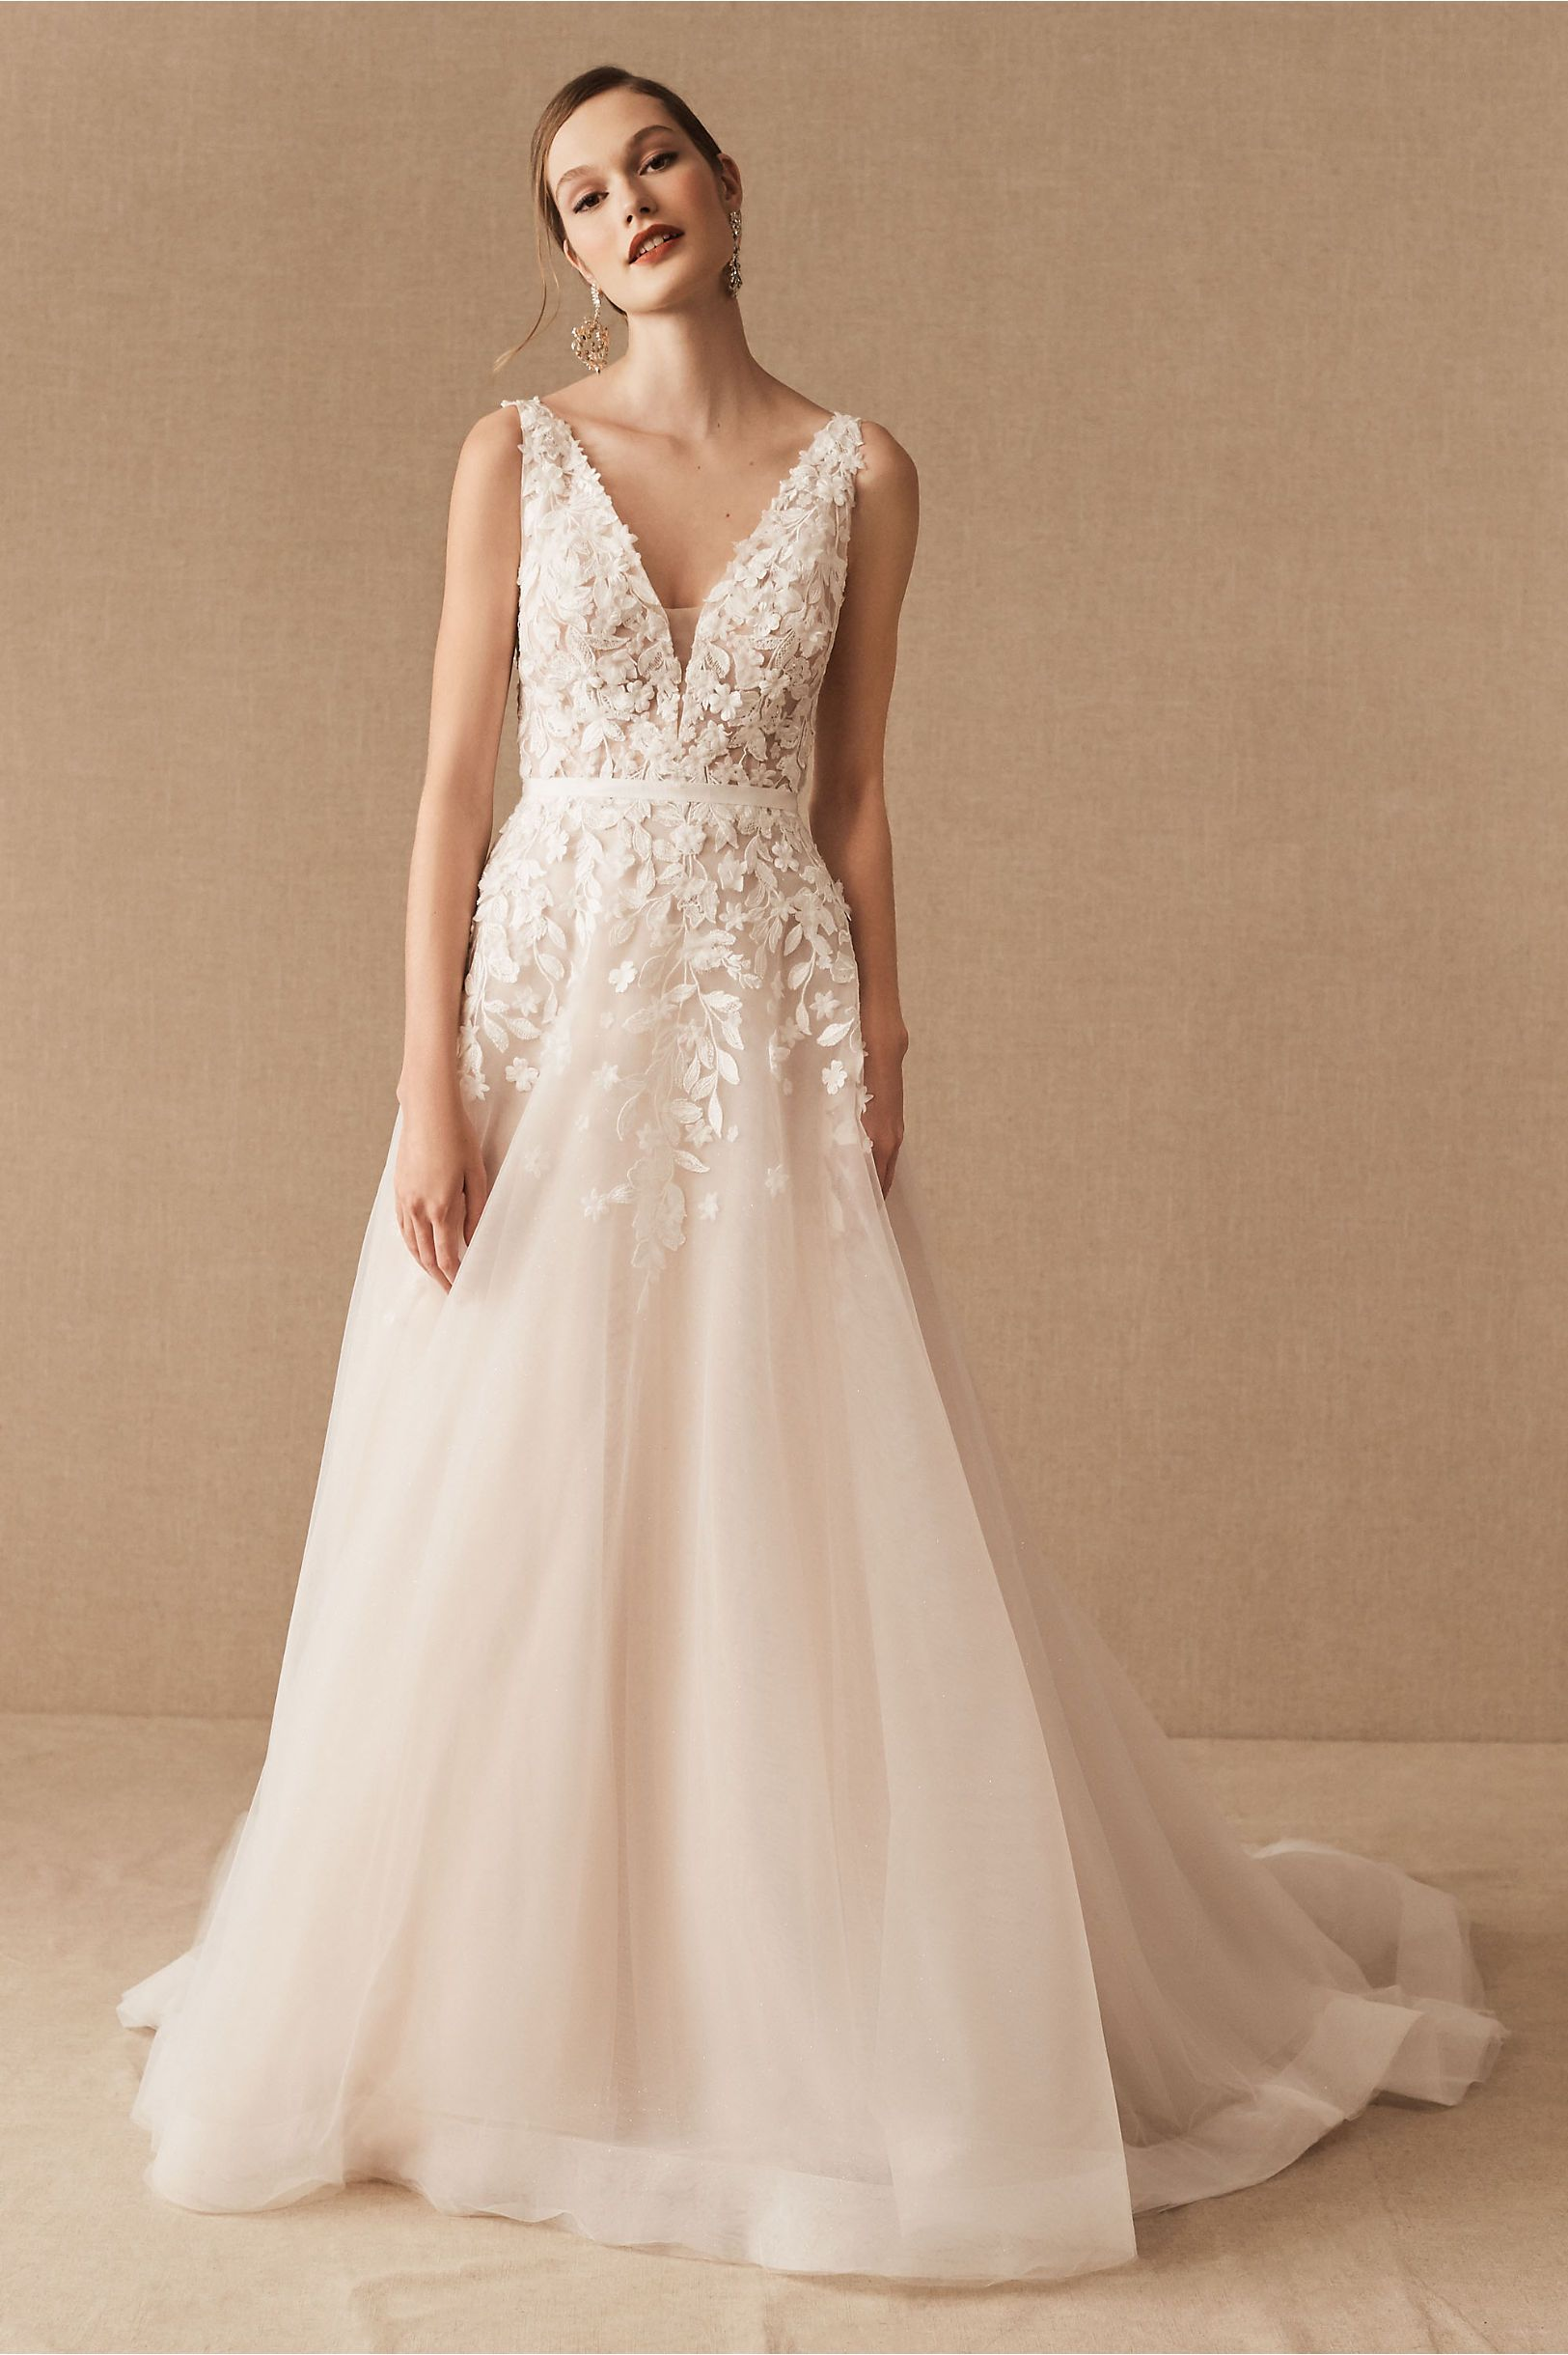 Best Online Bridal Boutiques In 2020 Buy Wedding Dress Online Wedding Dress Buy Wedding Dress Online